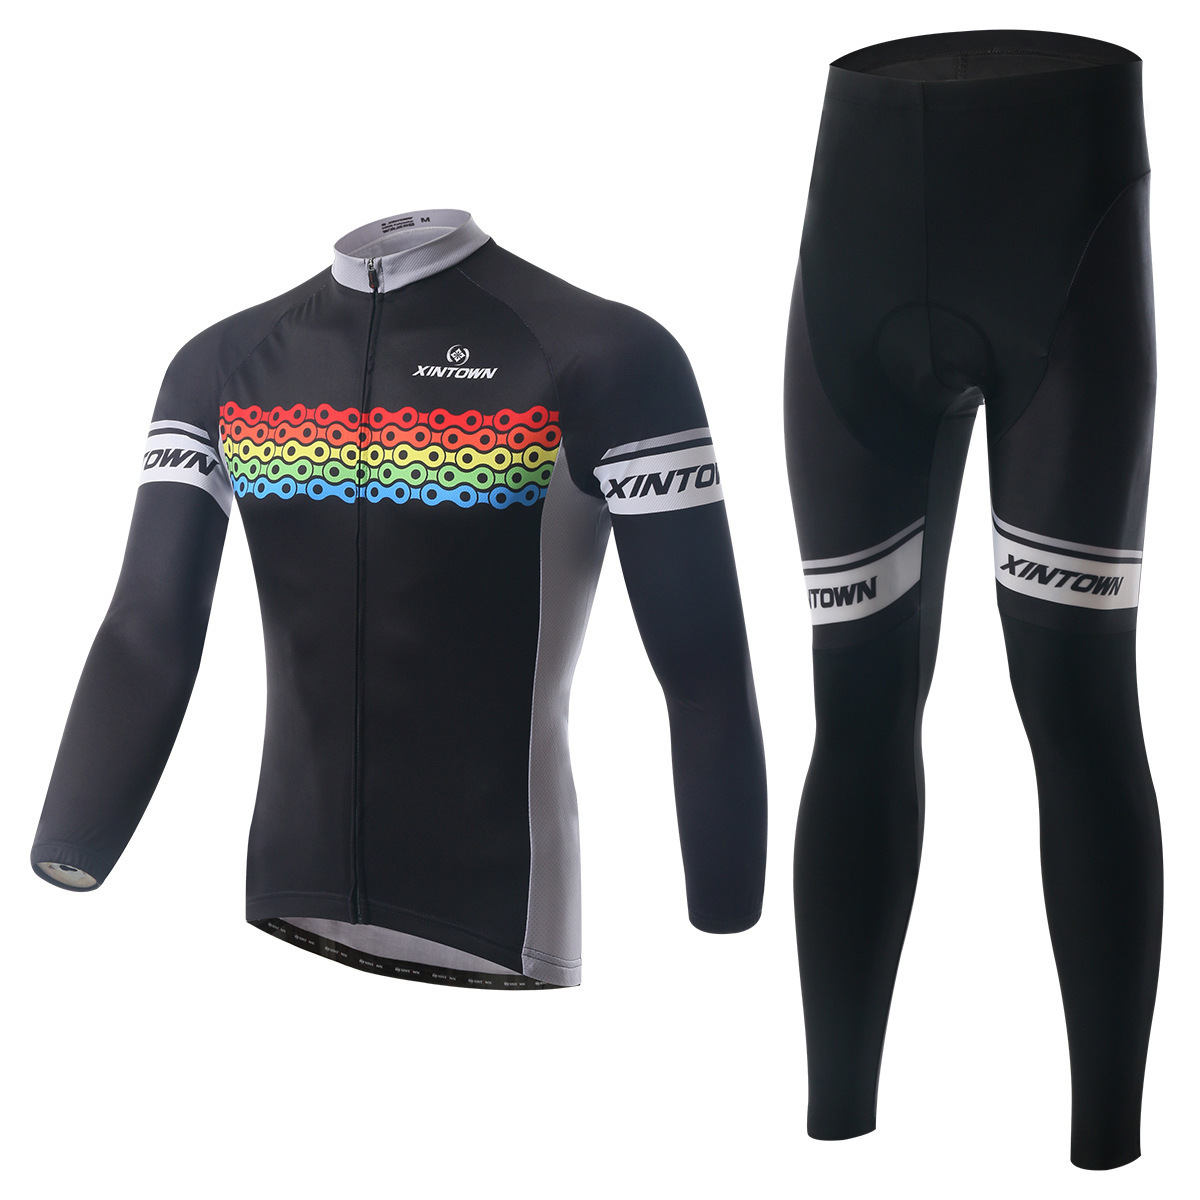 XINTOWN Men Cycling Jersey Set Bike Bicycle Long Sleeves MTB Clothing Shirts Breathable Cycling Jersey Set Ropa Ciclismo hot cheji men bike long jersey pants sets hornets black pro team cycling clothing riding mtb wear long sleeve shirts